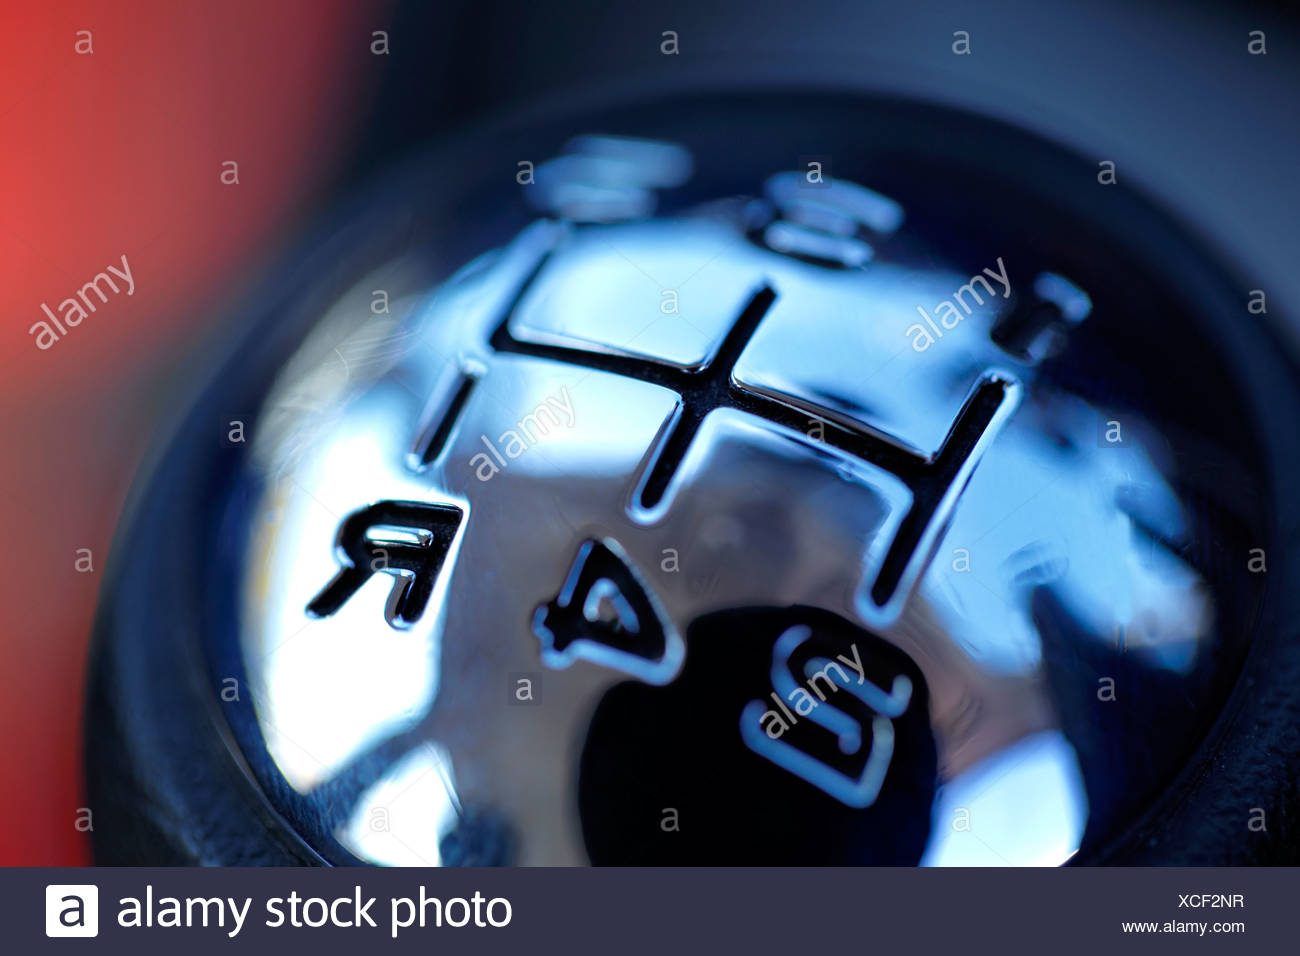 Close-up of a shift knob against blurred background - Stock Image